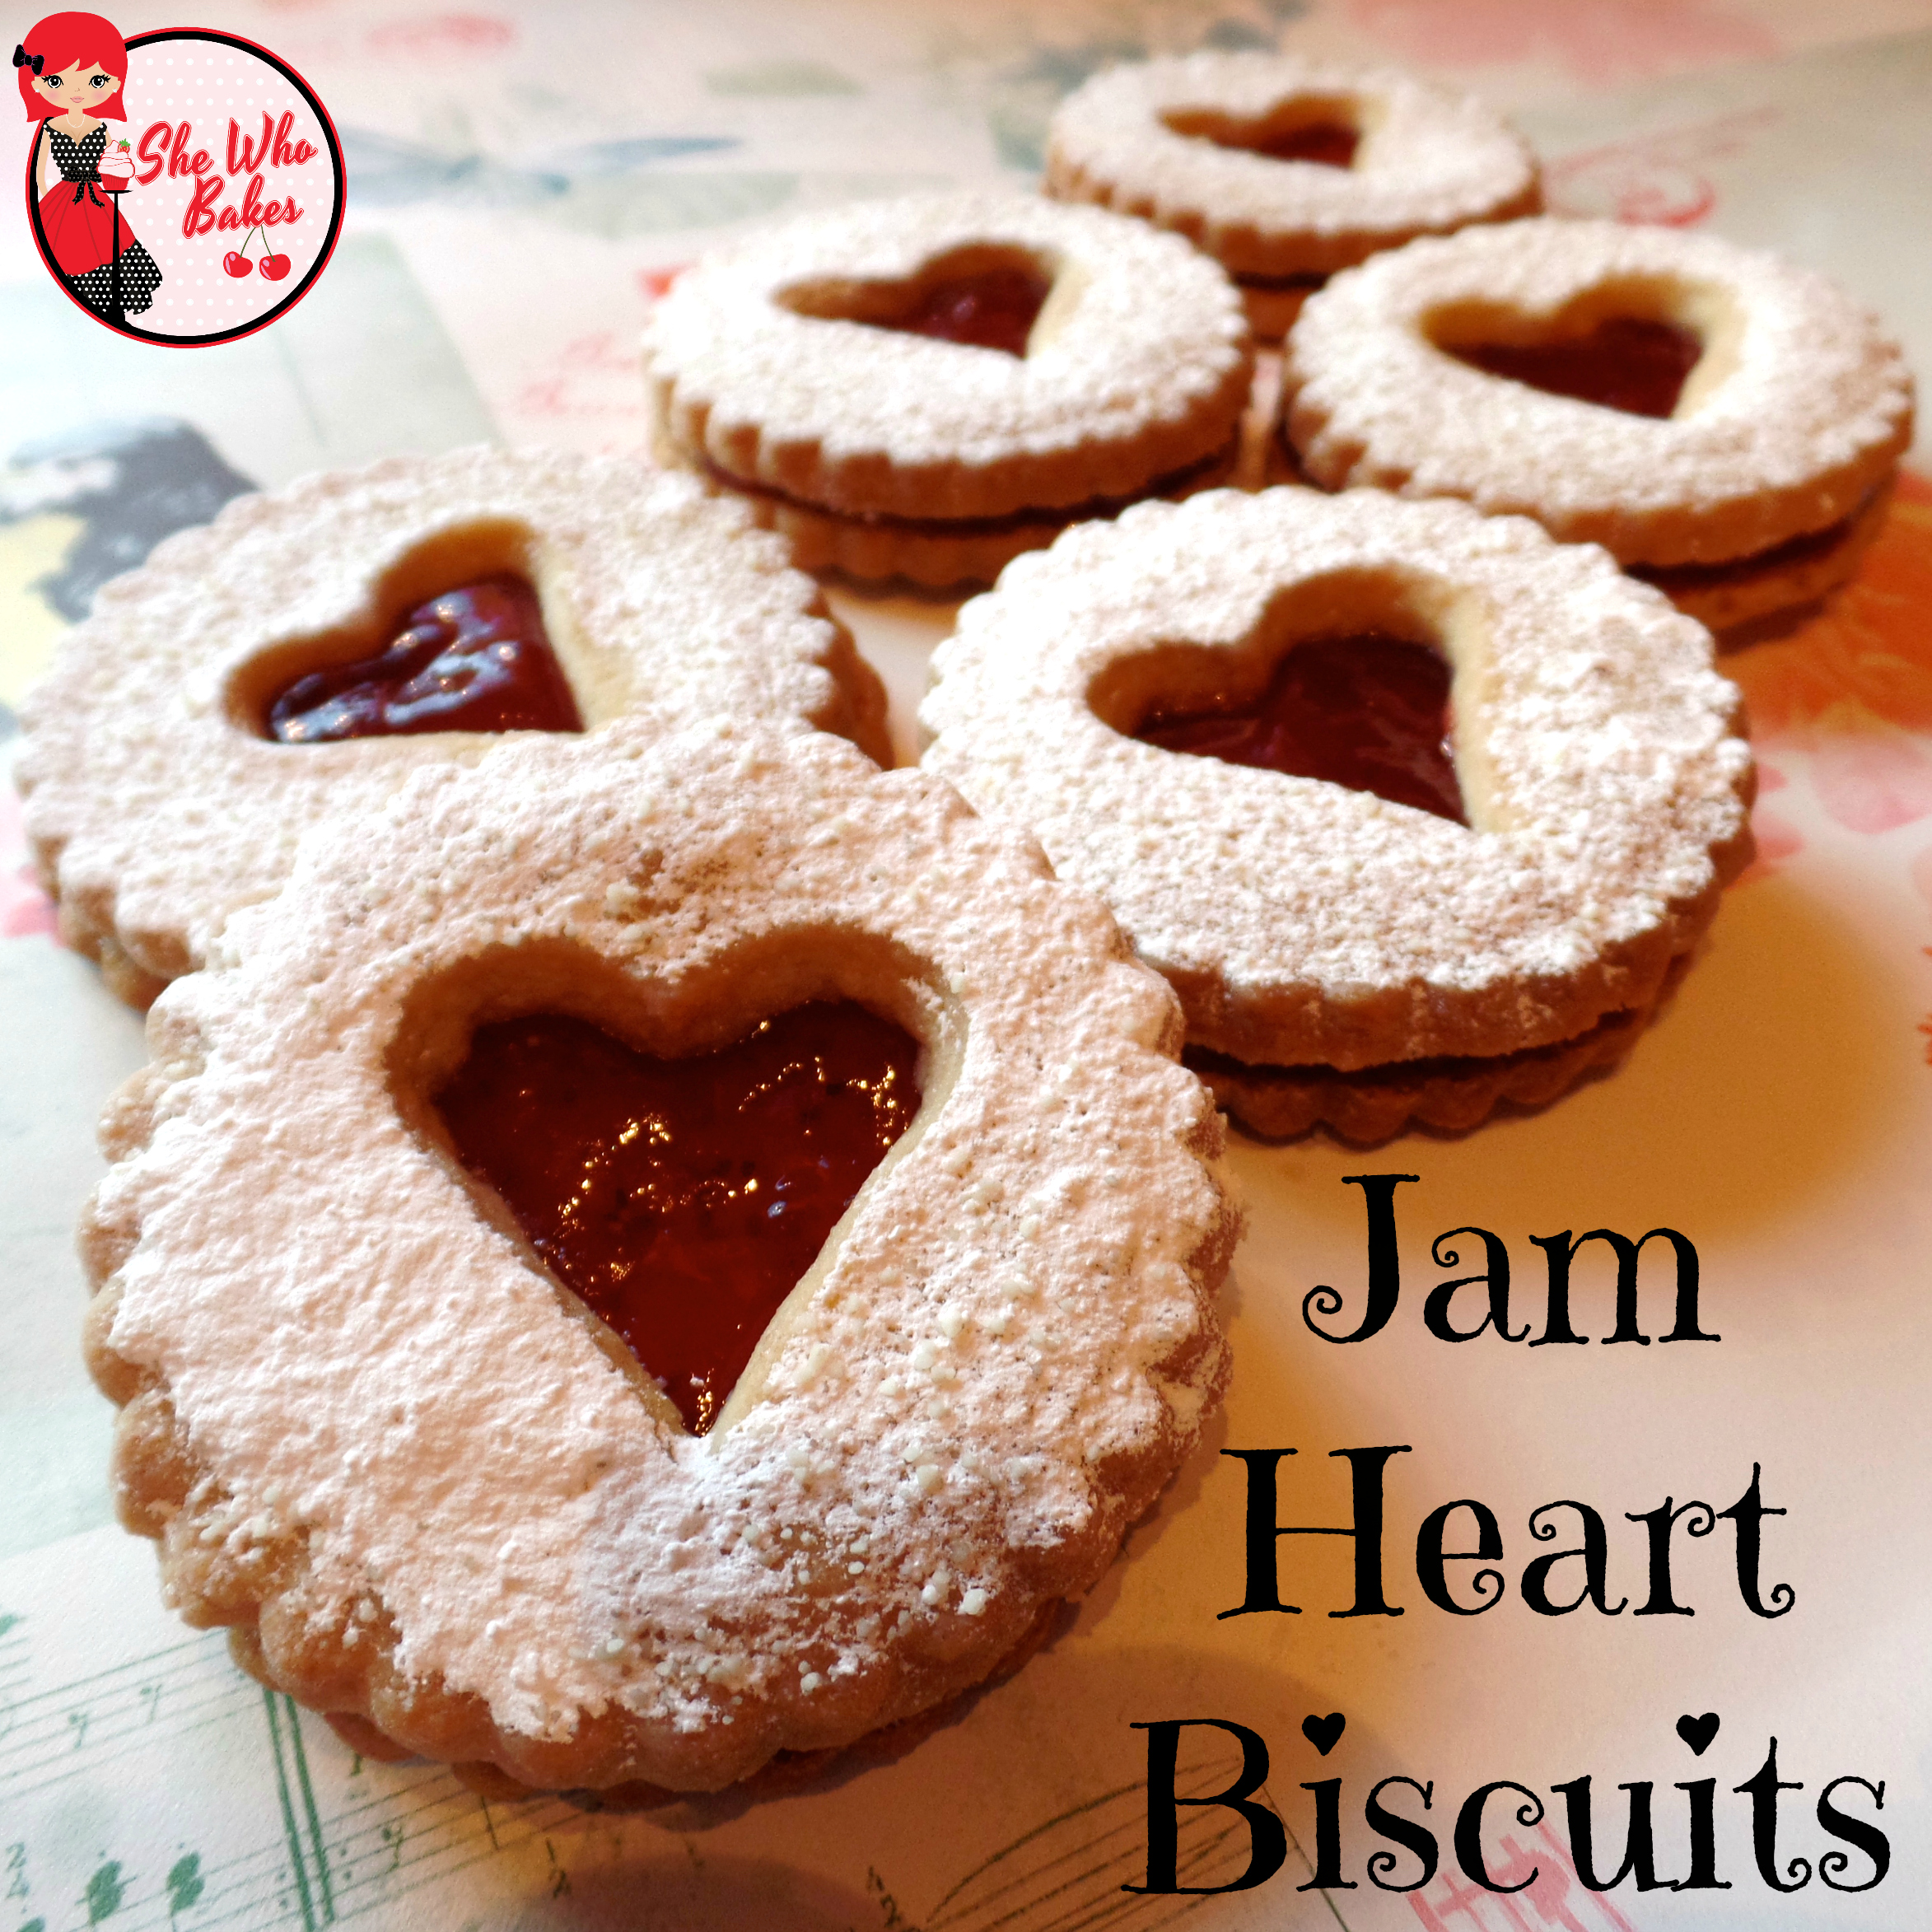 Jam Heart Biscuits - She Who Bakes